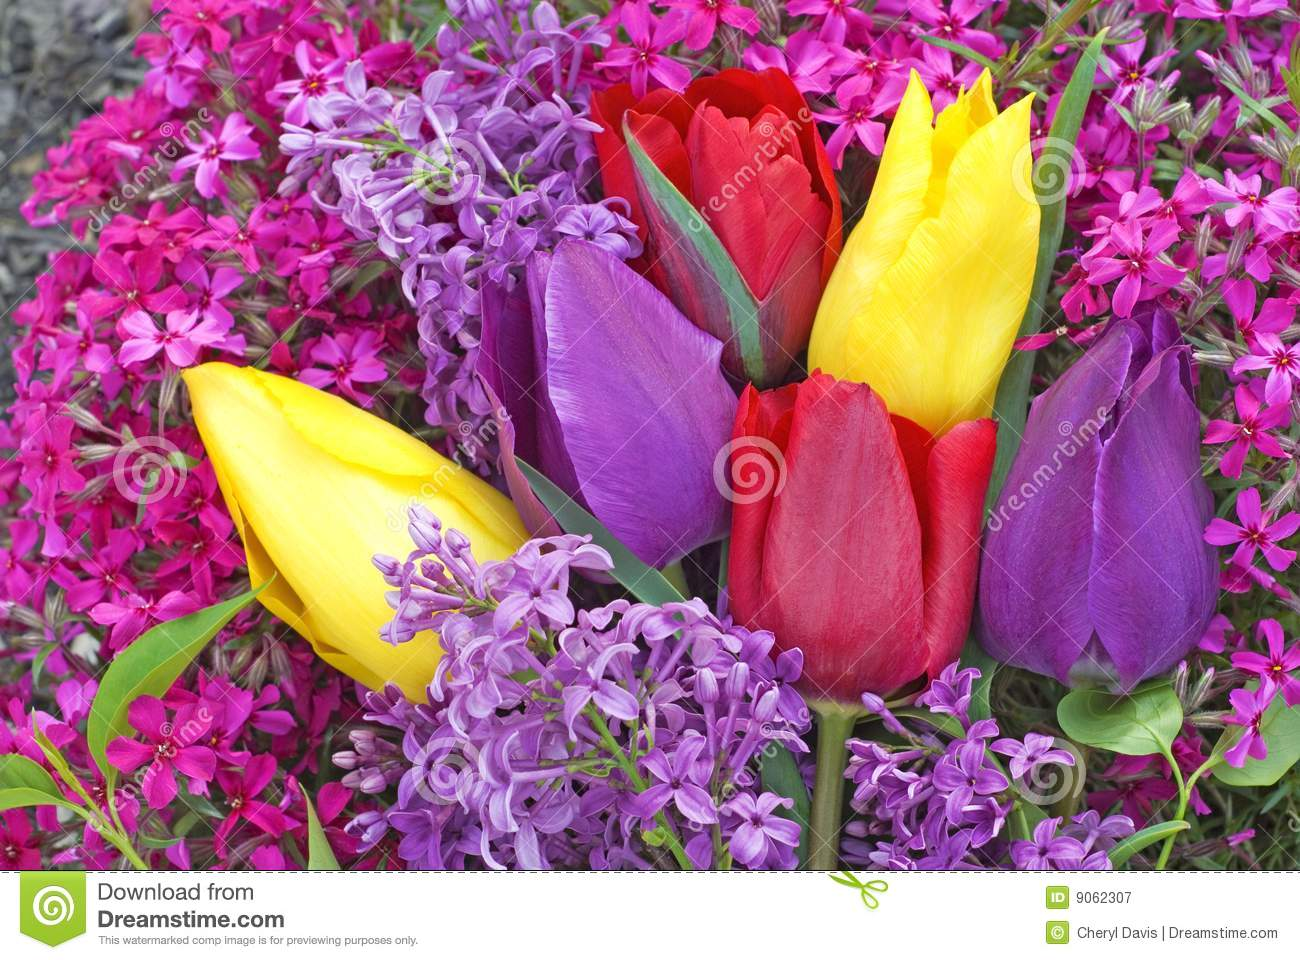 Bright colored tulips and spring flowers stock image image of bright colored tulips and spring flowers mightylinksfo